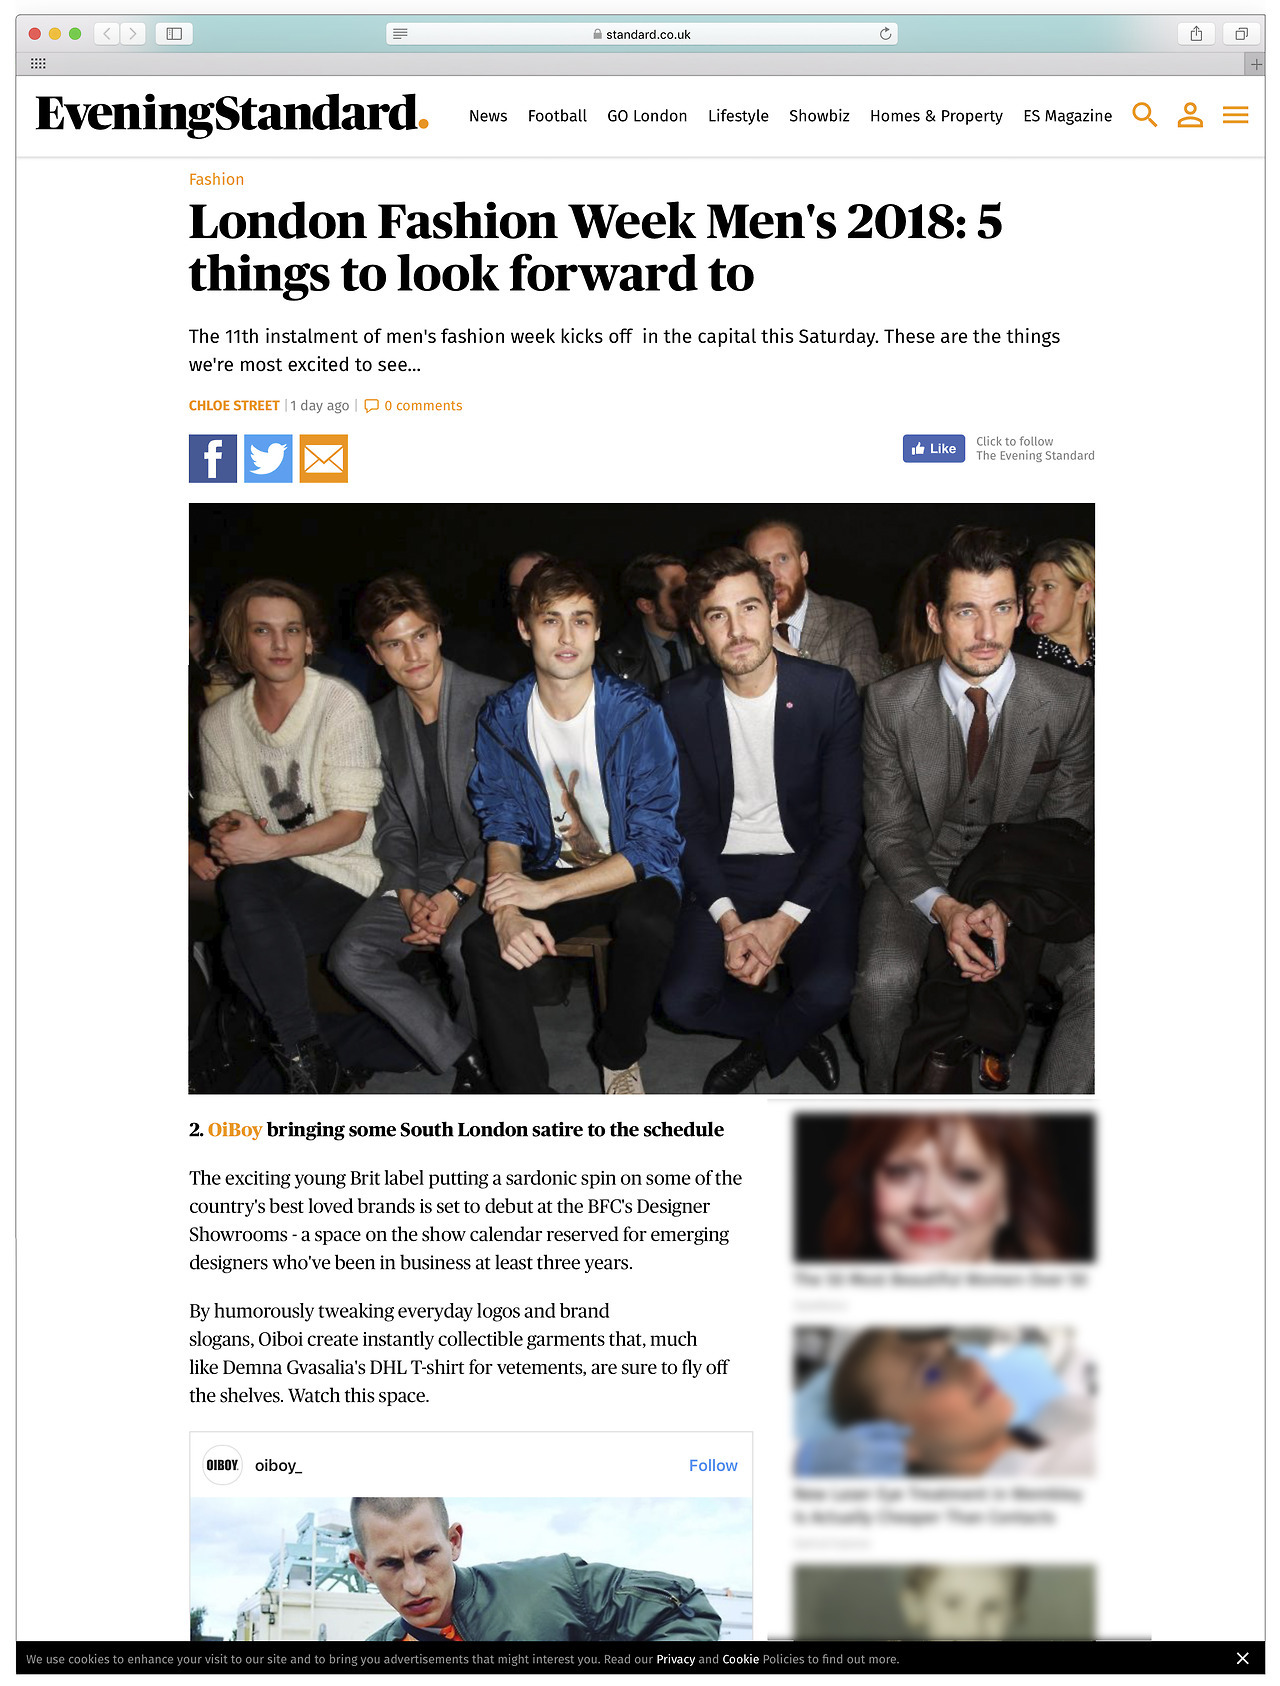 In at number 2… #LFWM #OIBOY   https://www.standard.co.uk/fashion/london-fashion-week-mens-2018-preview-what-to-expect-highlights-a3731101.html